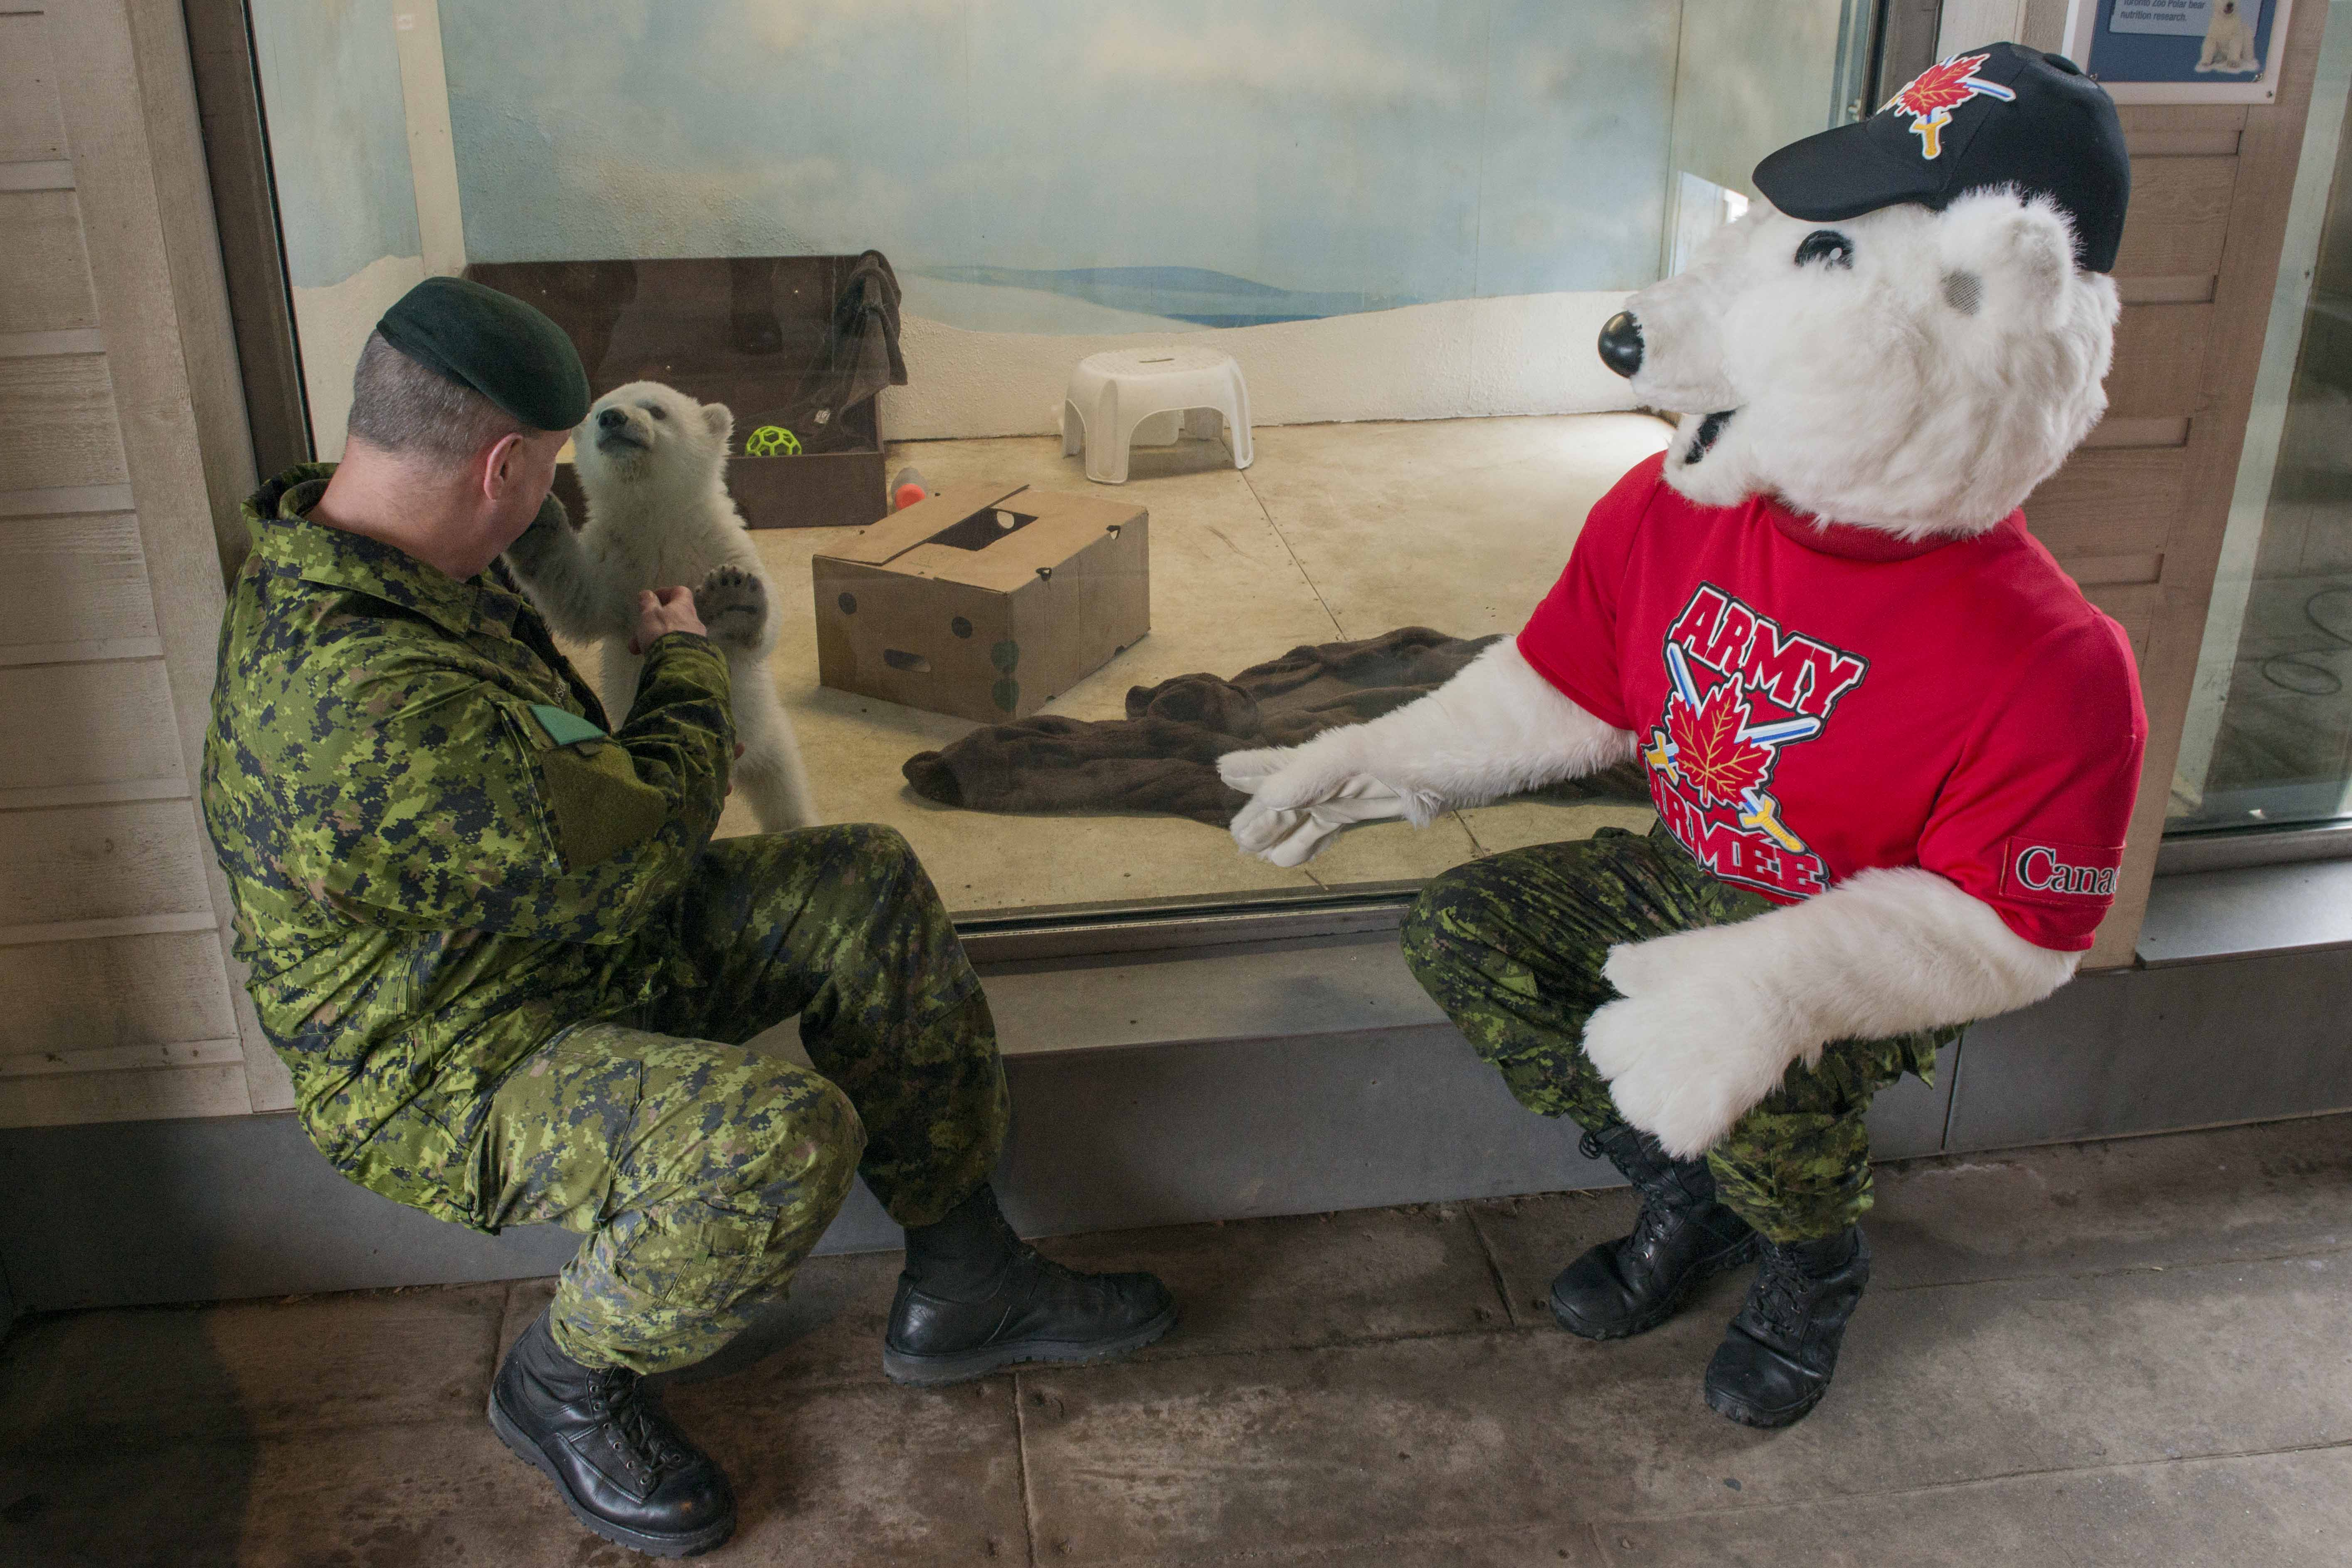 Brigadier-General David Patterson, Deputy Commander of the 4th Canadian Division, and Juno, the Canadian Army mascot, welcome the Canadian Army's adopted polar bear cub, Private Juno, at Toronto Zoo on February 25, 2016. Photo by: MCpl Precious Carandang, 4th Canadian Division Public Affairs 2016 DND-MDN Canada.